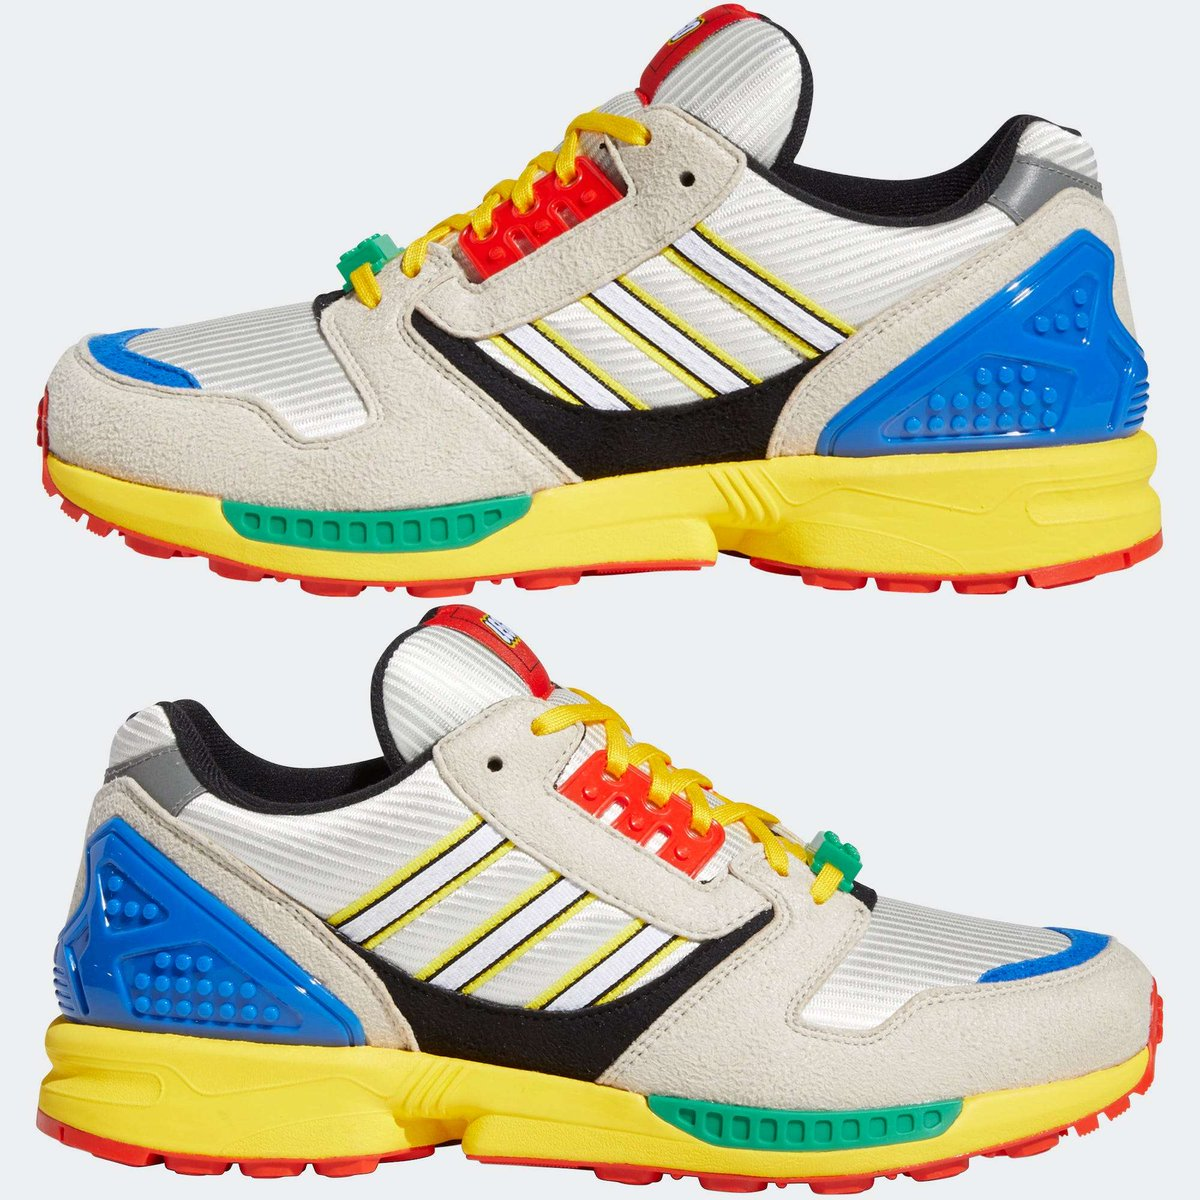 .@adidas and @LEGO_Group are launching $130 sneakers that look just like the colorful toys  #atozx #adidasZX8000 #adidasOriginals    https://t.co/uLthaZ4R9Q https://t.co/FoHqvy9dyO